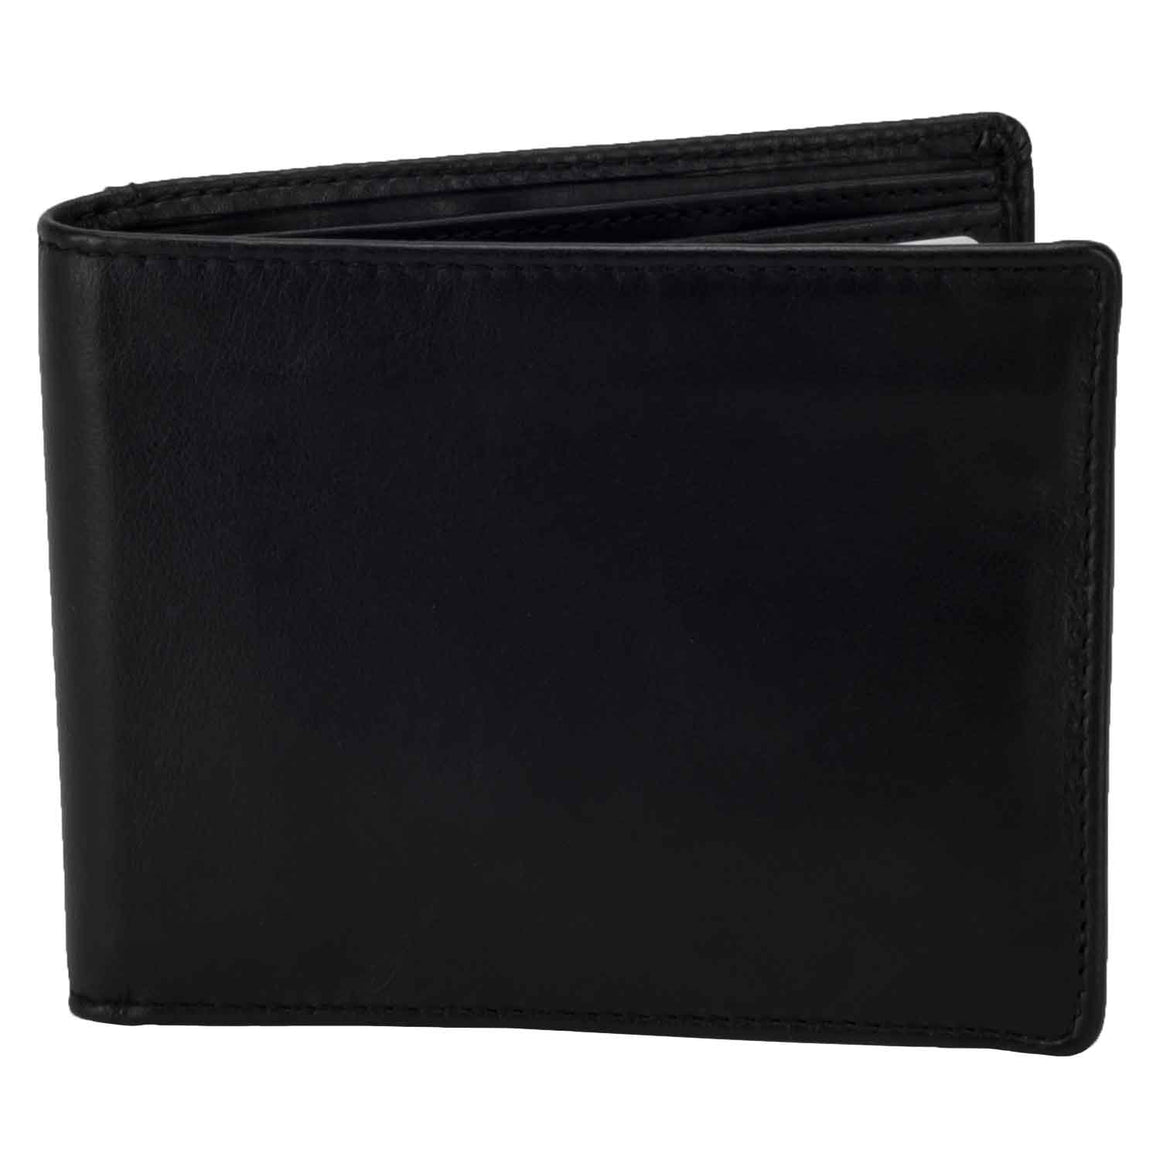 Wallet by DiLoro Italy Mens Wallets RFID Safe Genuine Leather Black Slim 2403-BK - Inside, Open View